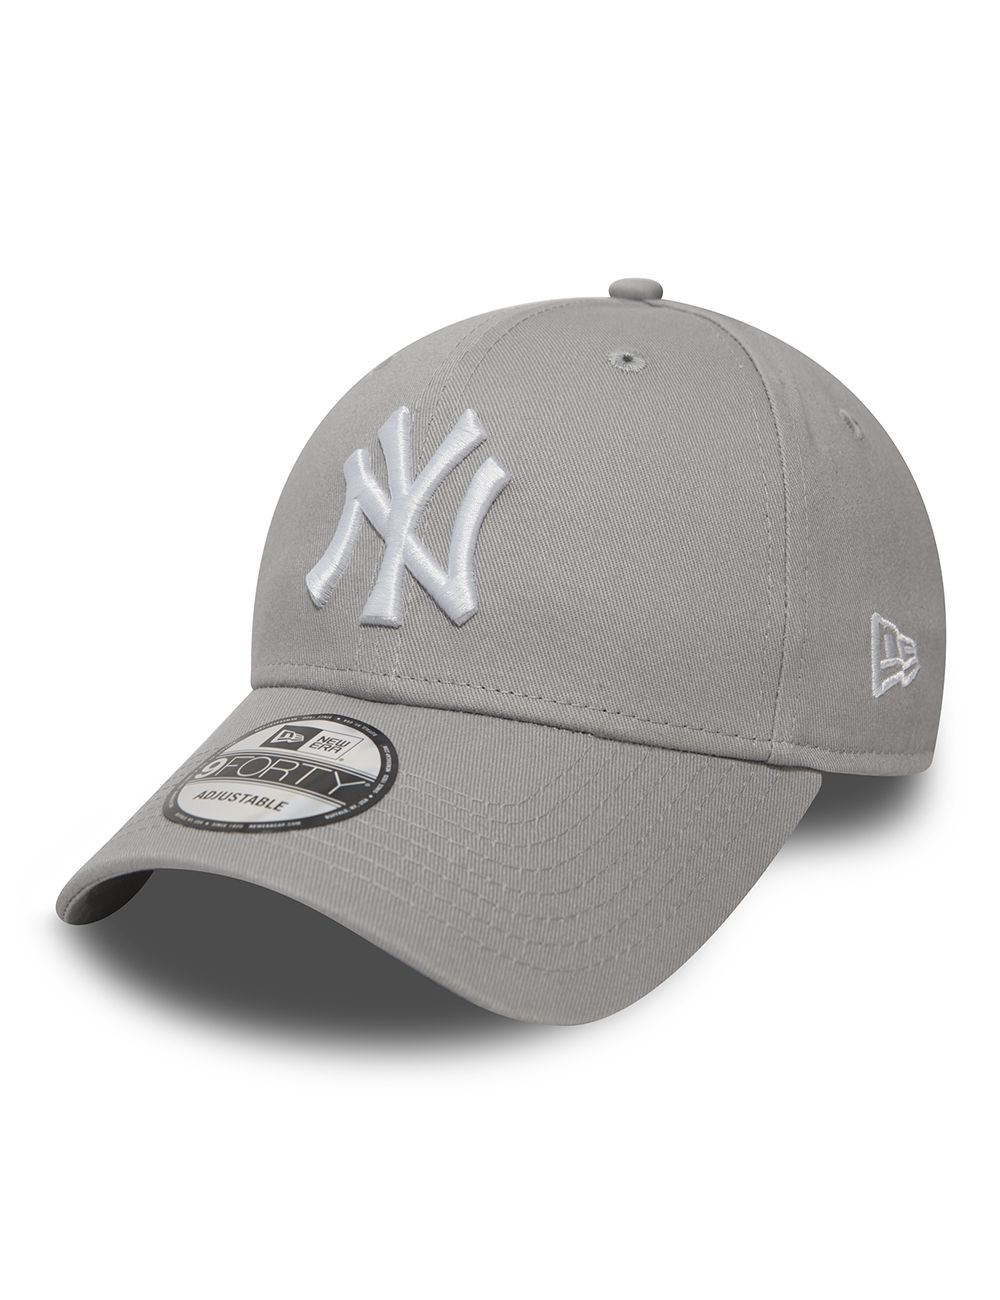 3eaa0e5c36d5d Casquette New Era Enfant NY YANKEES Gris Child 9Forty